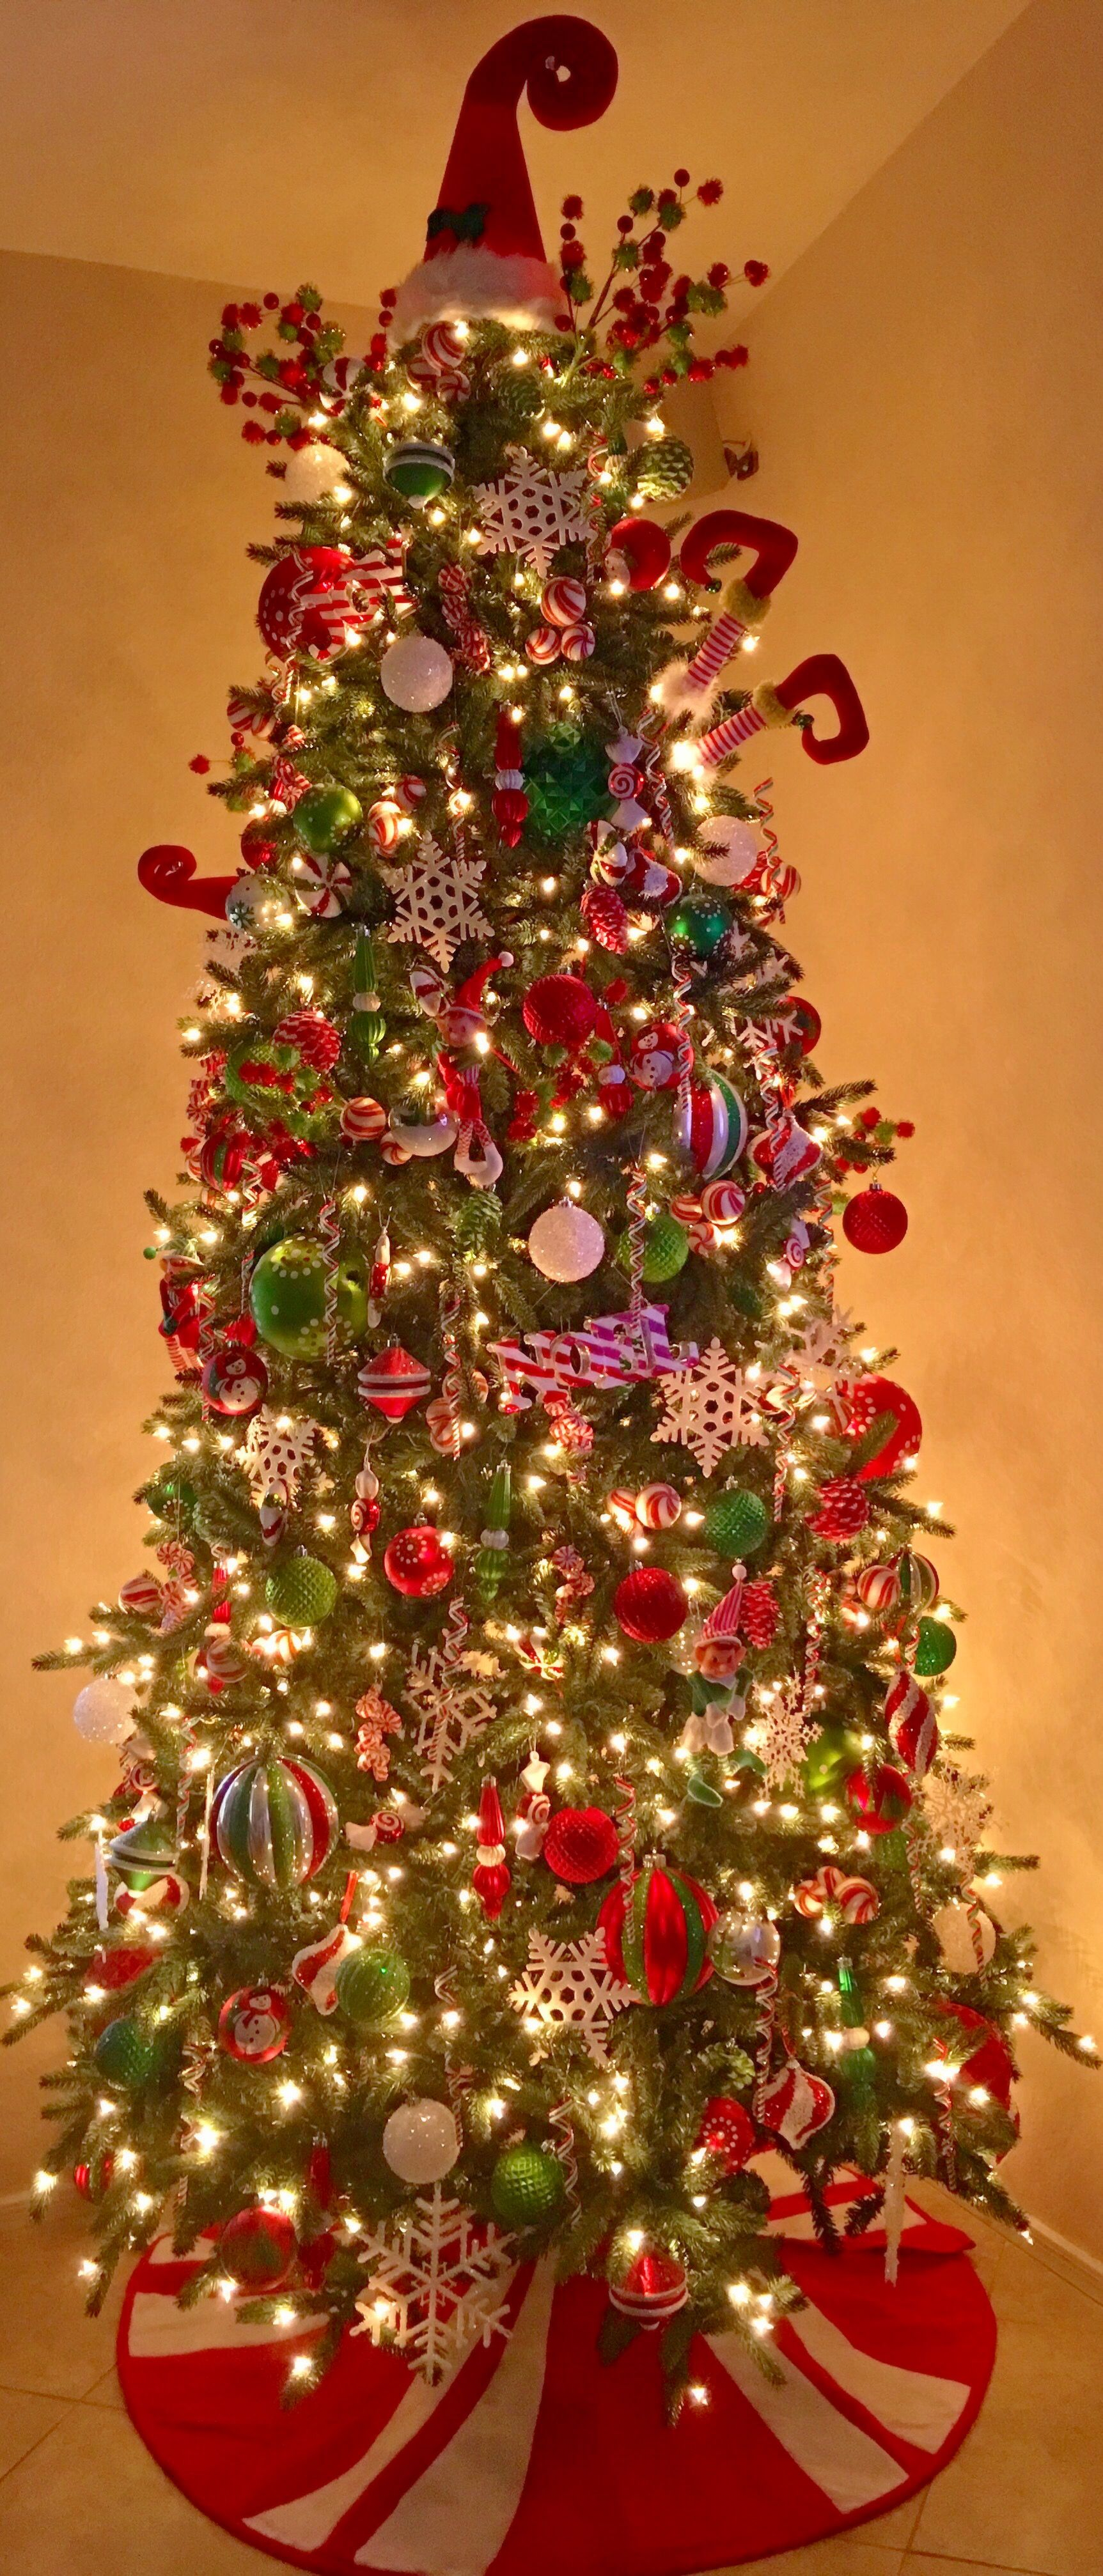 christmas tree 2016 whimsical tree sweet holiday pier one hobby lobby - Hobby Lobby Christmas Decorations 2016